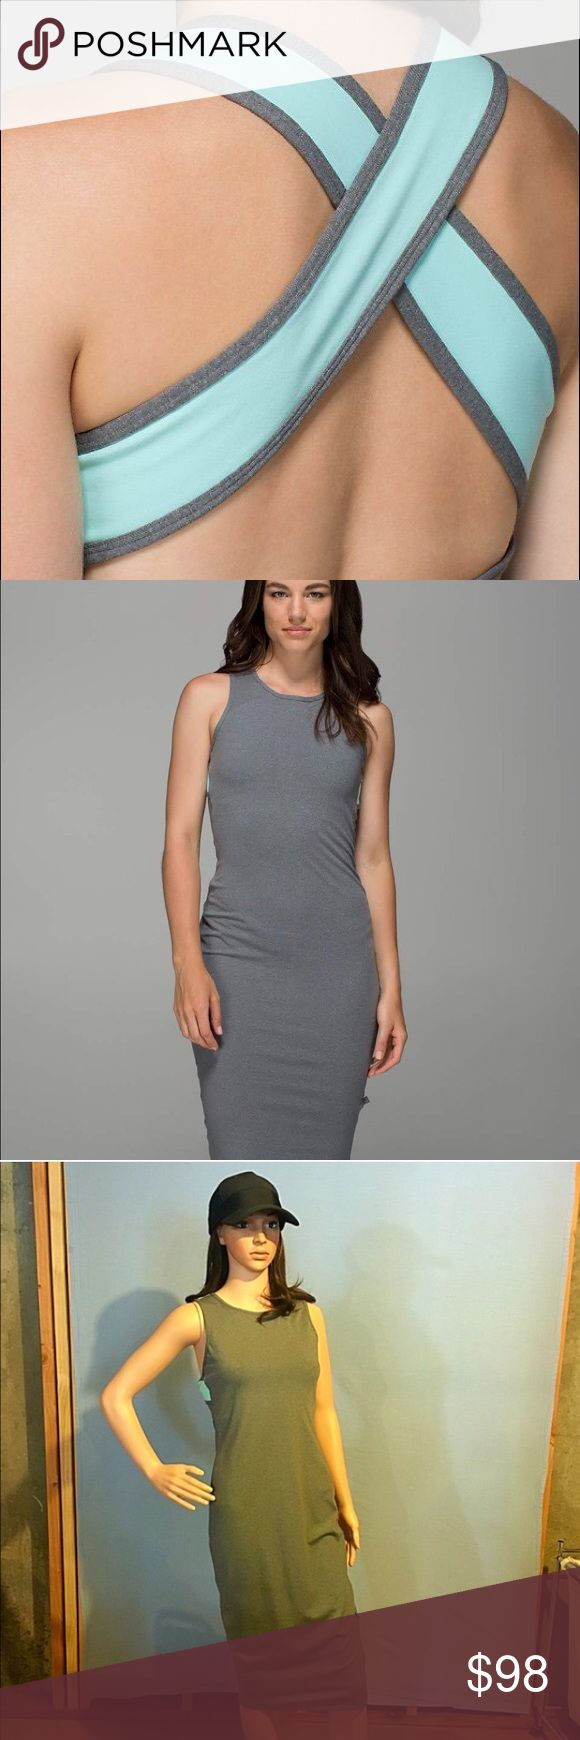 Lululemon Picnic Play Dress Authentic Lululemon This dress is amazingly sporty & sexy!! Go from day into evening in this slim fitting soft stretchy dress with sweat wicking material. This dress is essential to every closet. You will turn heads in this beautiful cross back detailed dress with soft blue accents.💌Thank You for your Interest!!😘 ❌NO Trades❌ 💲Price FIRM, Use the Bundle Discount: 4️⃣Items=20%OFF!! ✨Can't find 4️⃣you like? Make you a custom BUNDLE. lululemon athletica Dresses…